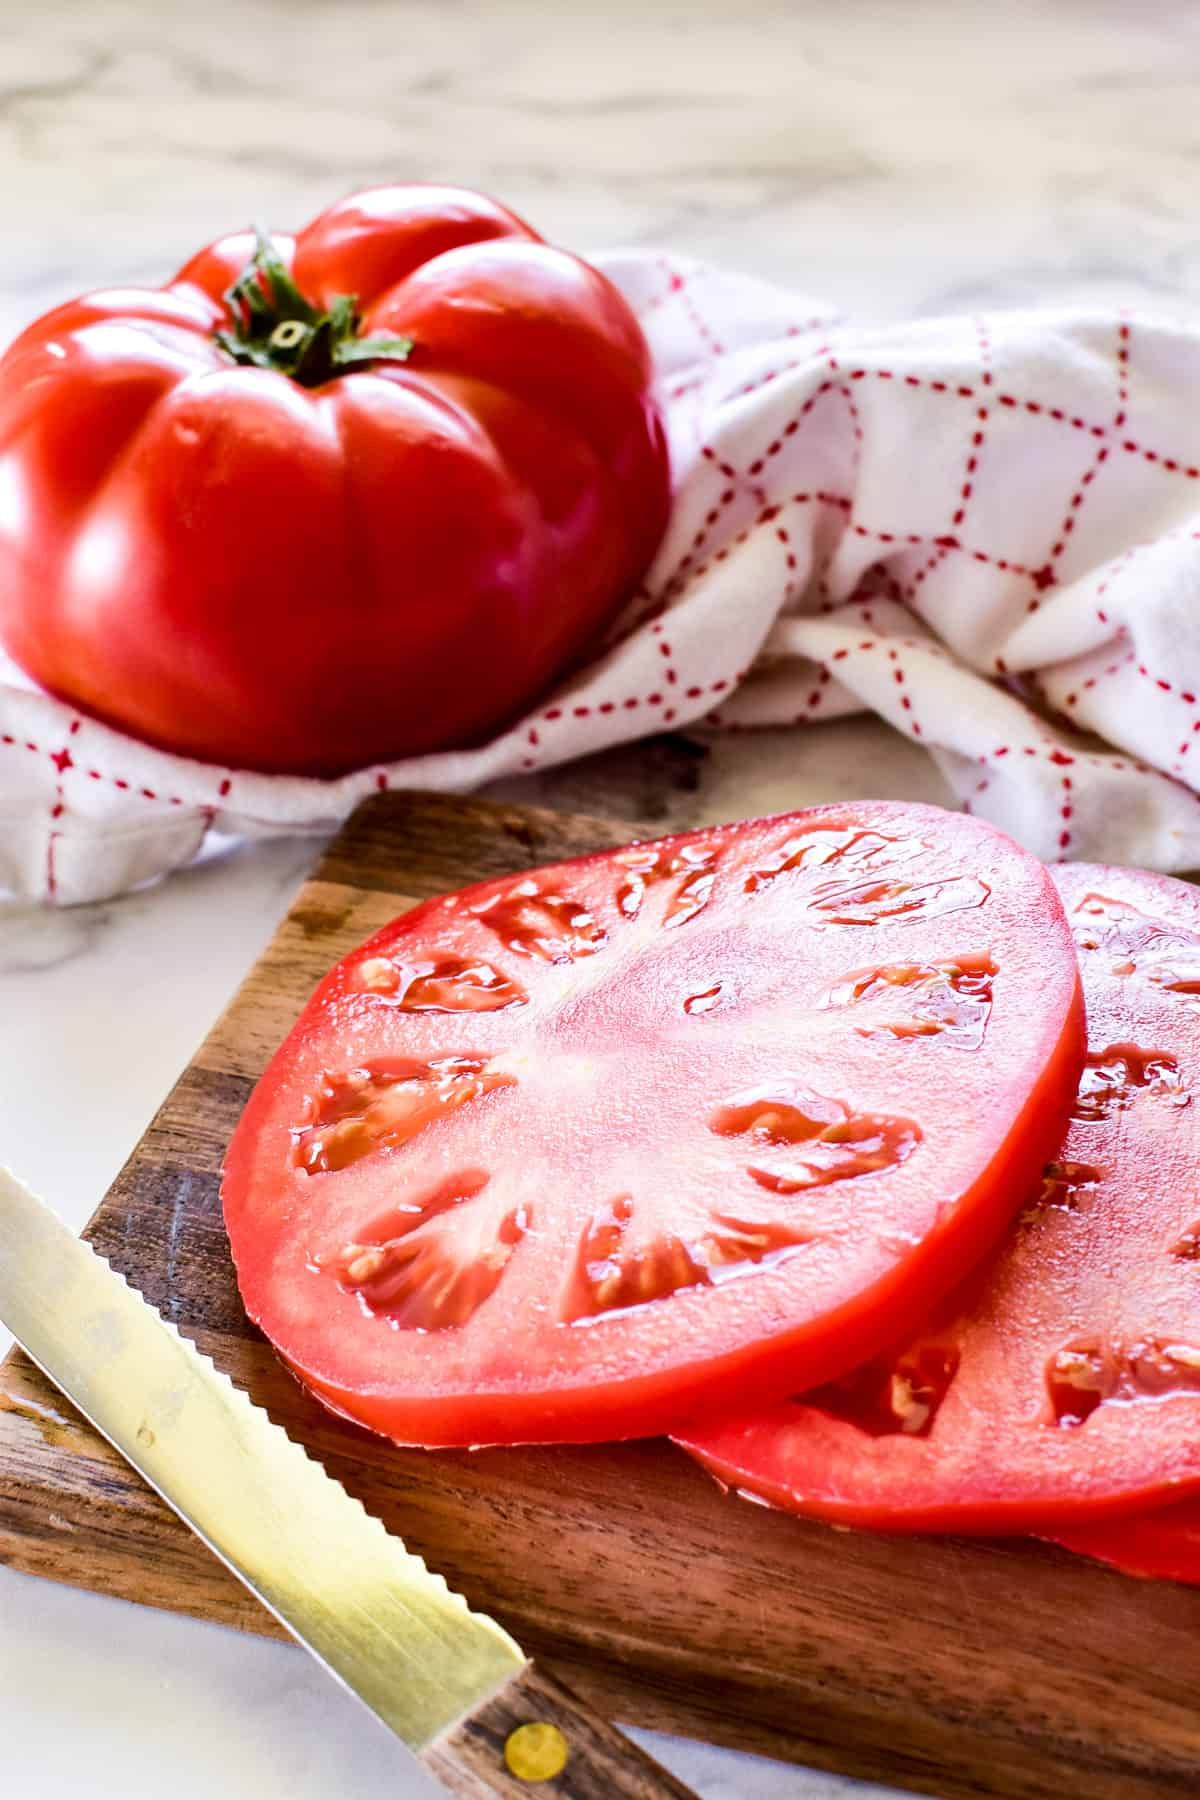 Tomatoes sliced on a wooden cutting board